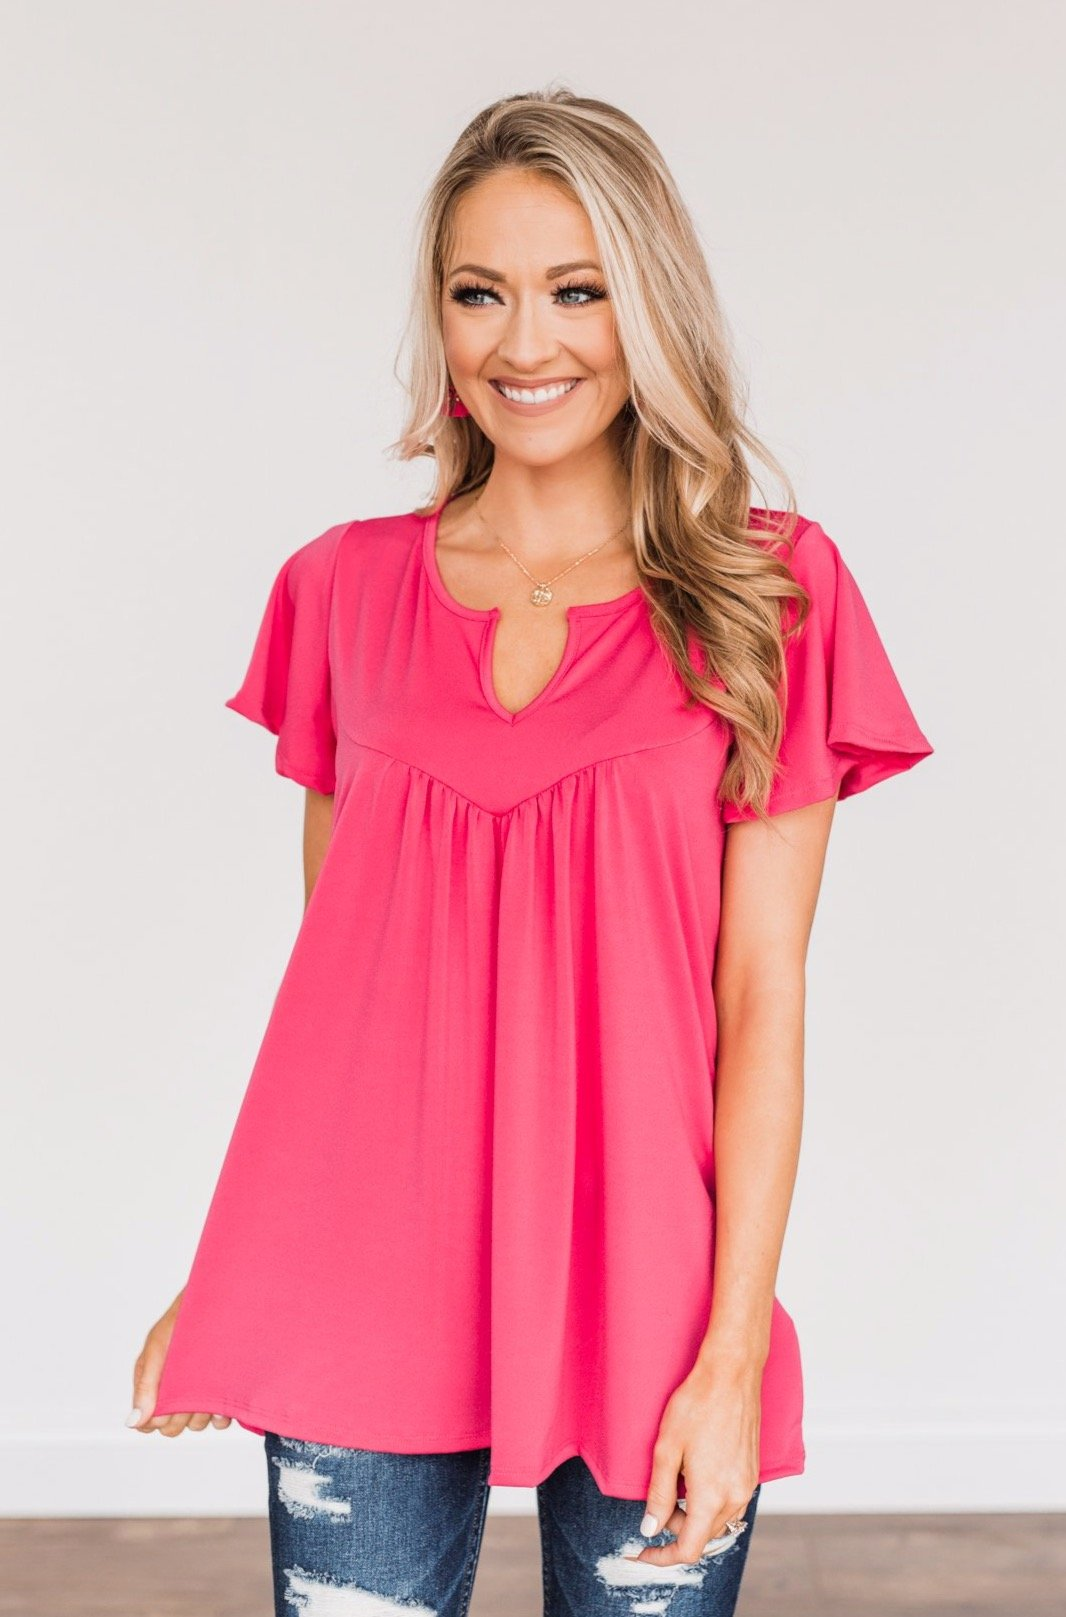 Strive For Excellence Notch Top- Fuchsia